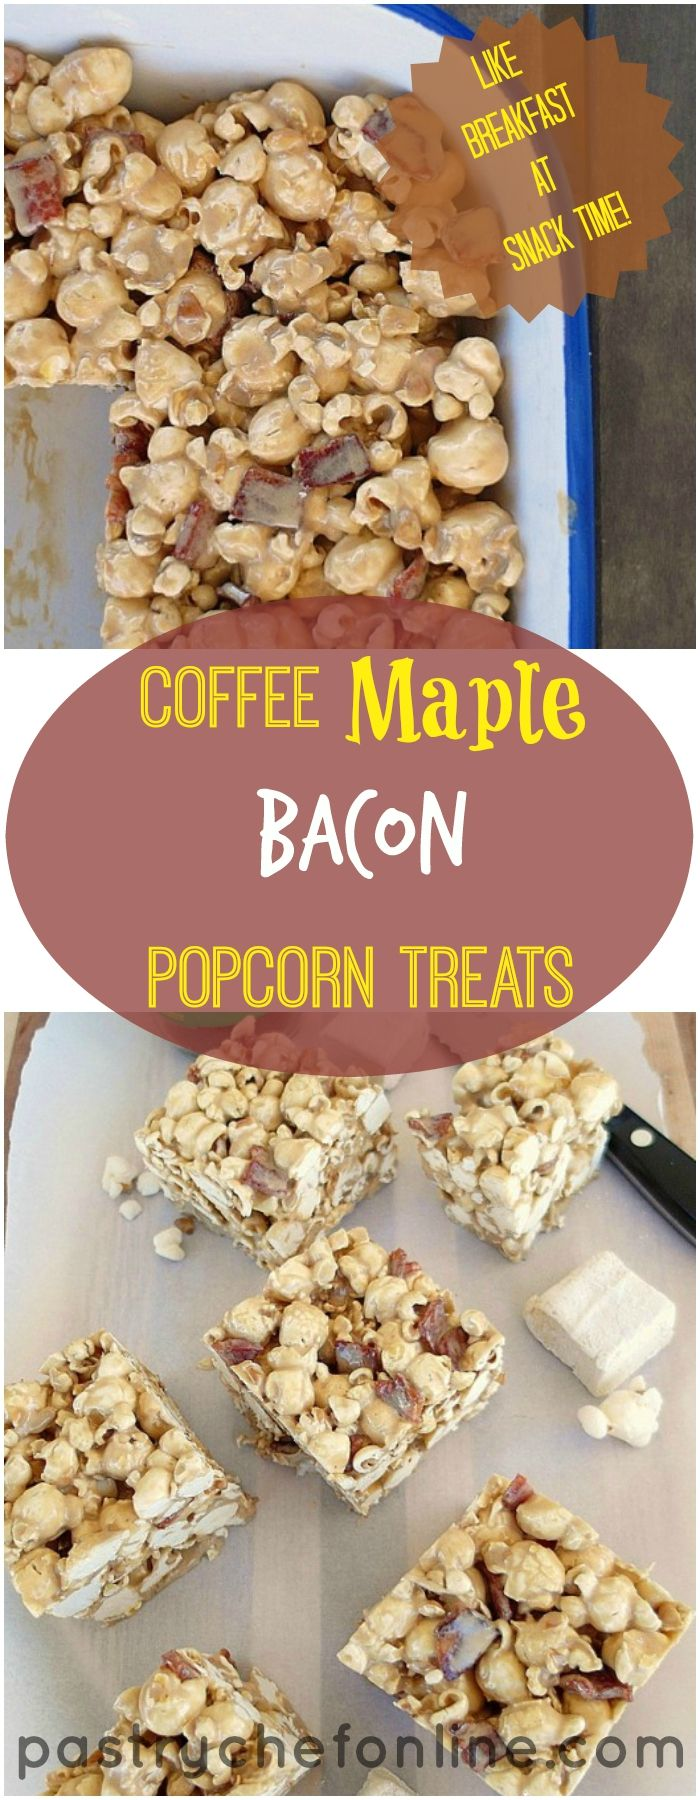 1000+ images about Popcorn recipes on Pinterest | Homemade caramels ...